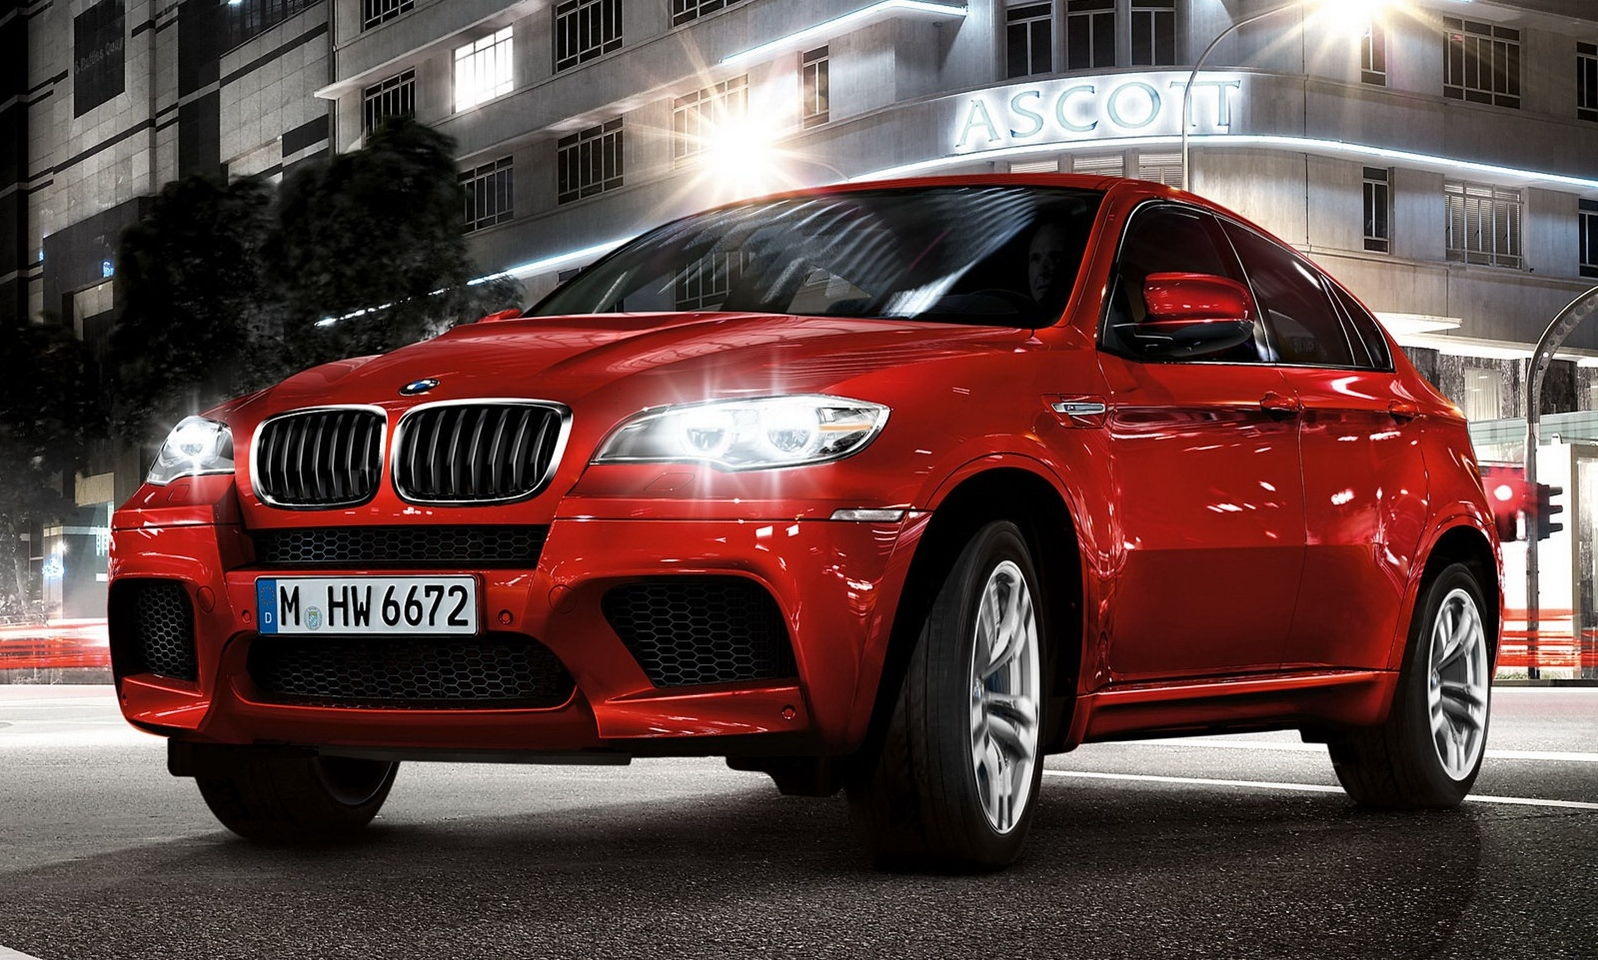 2013 BMW X6 M - Information and photos - ZombieDrive